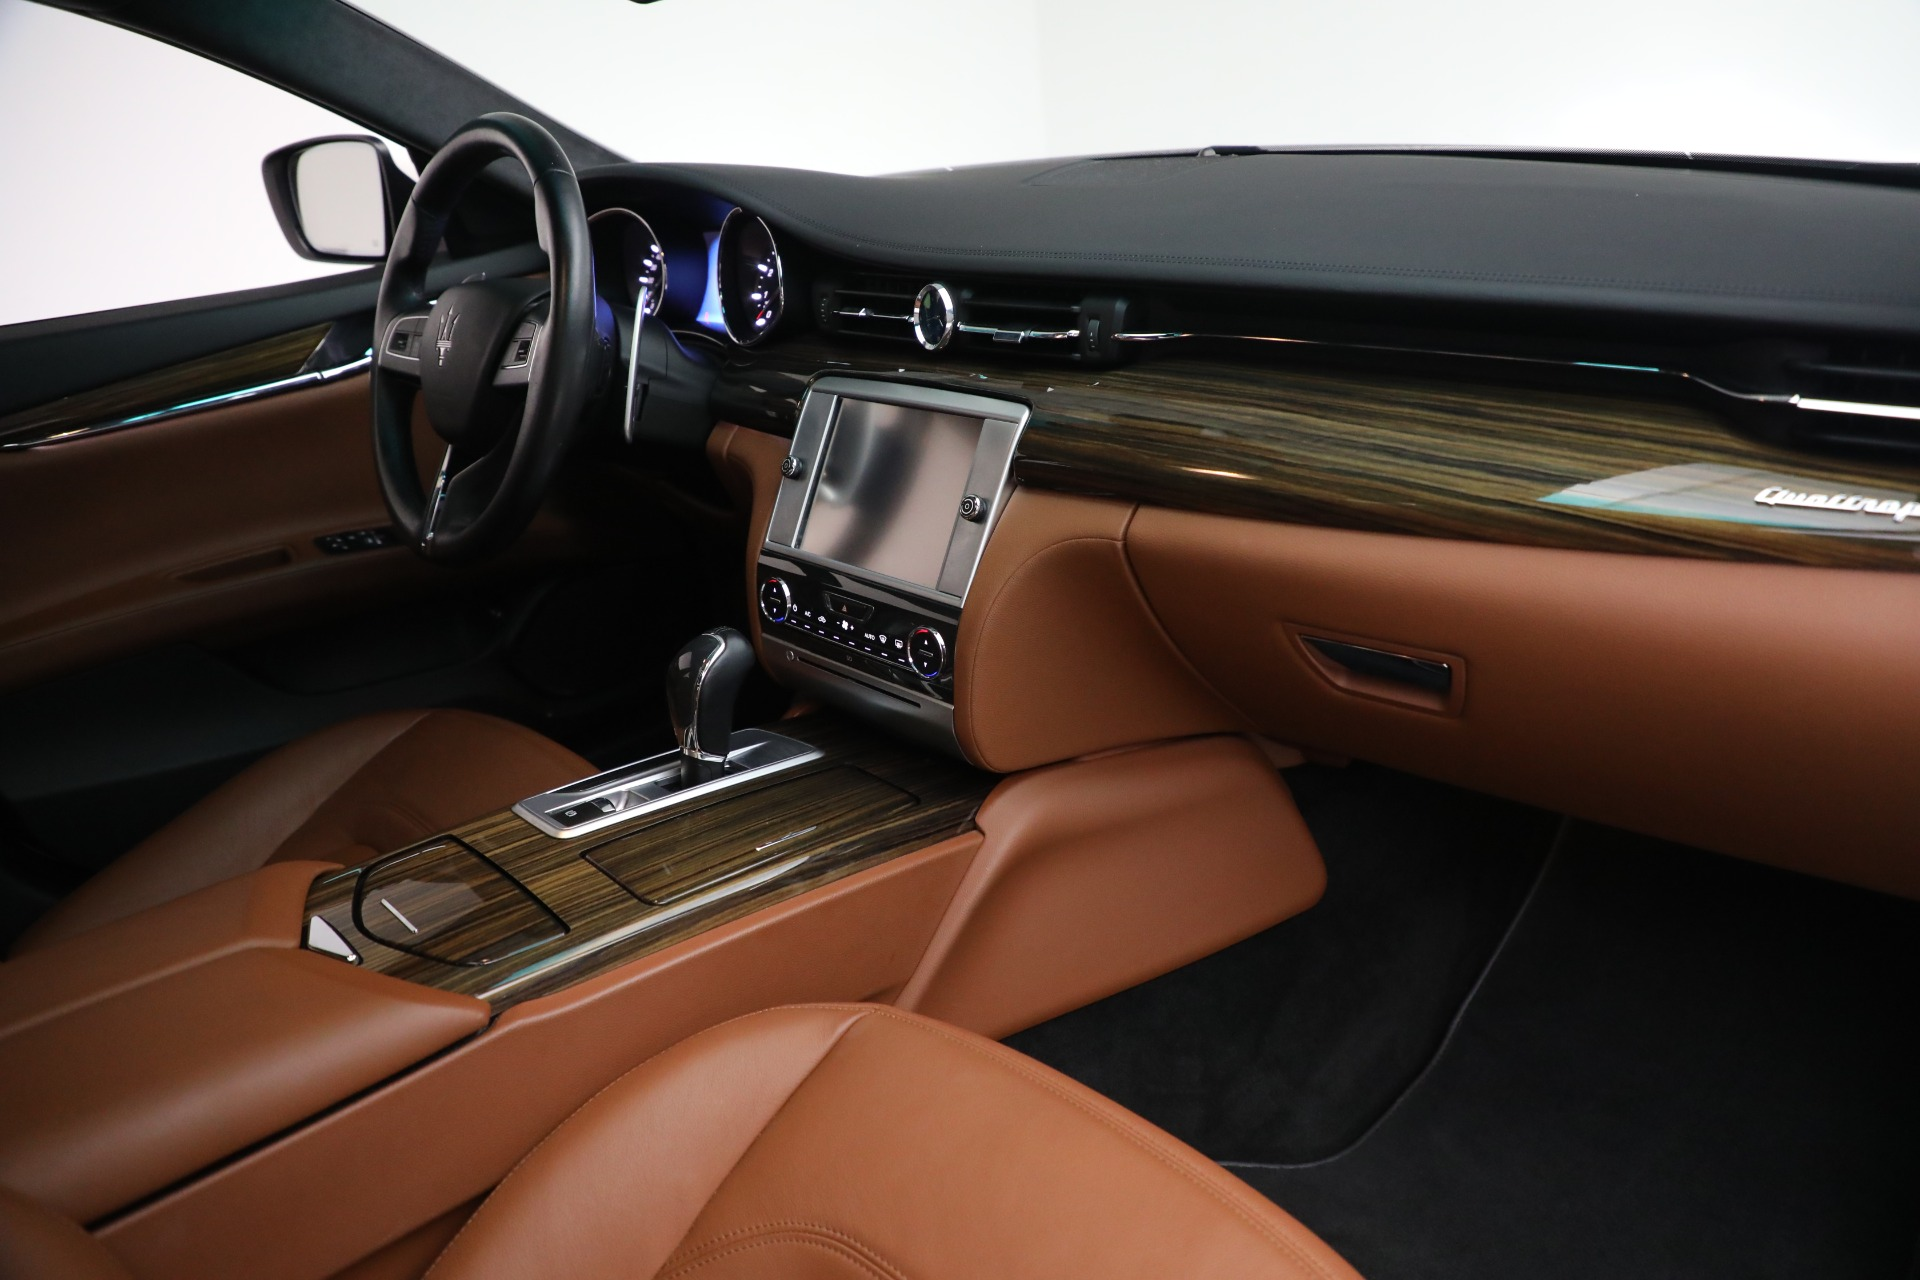 Used 2015 Maserati Quattroporte S Q4 For Sale In Greenwich, CT 2915_p19